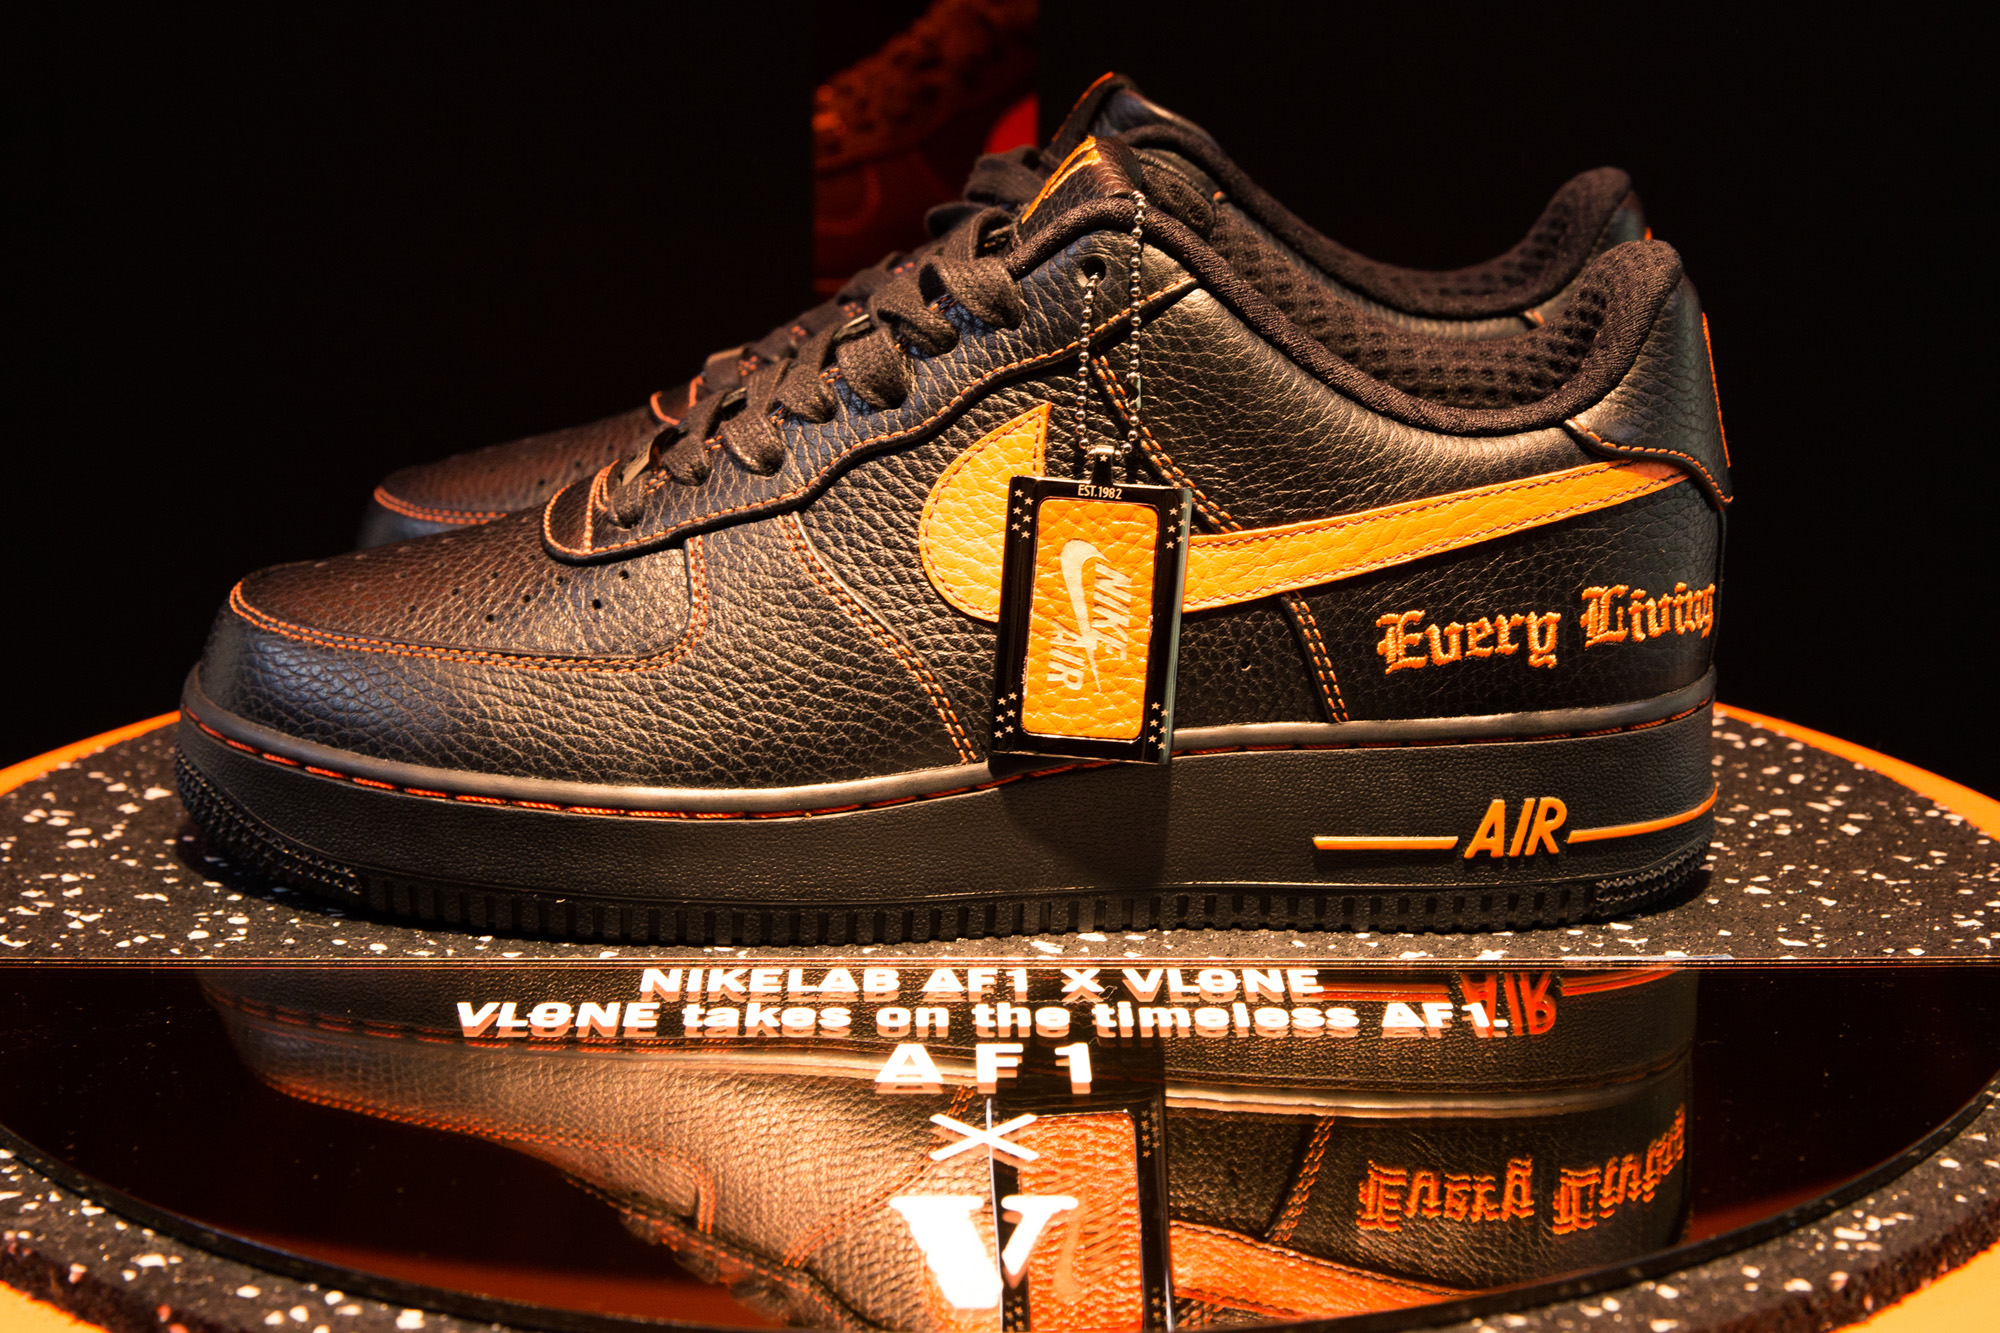 2017 Nike Collaborations Including Riccardo Tisci And